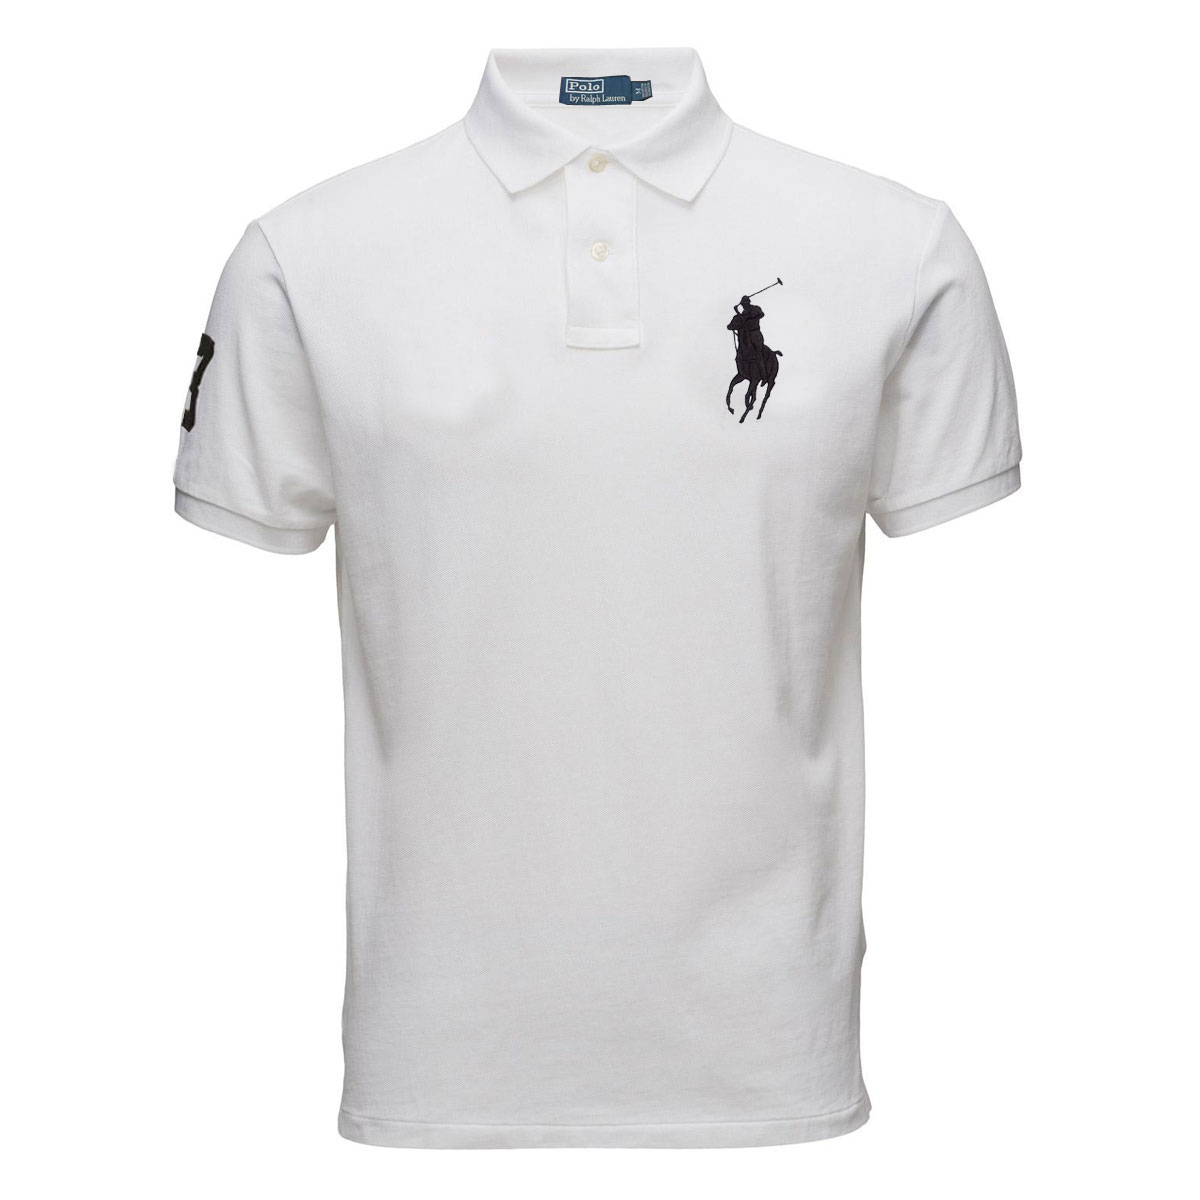 5ec7f316b6e2e Modelo  Big Pony Polo - Cor  Branco - Acesse  Camisa Polo Ralph Lauren Big  Pony